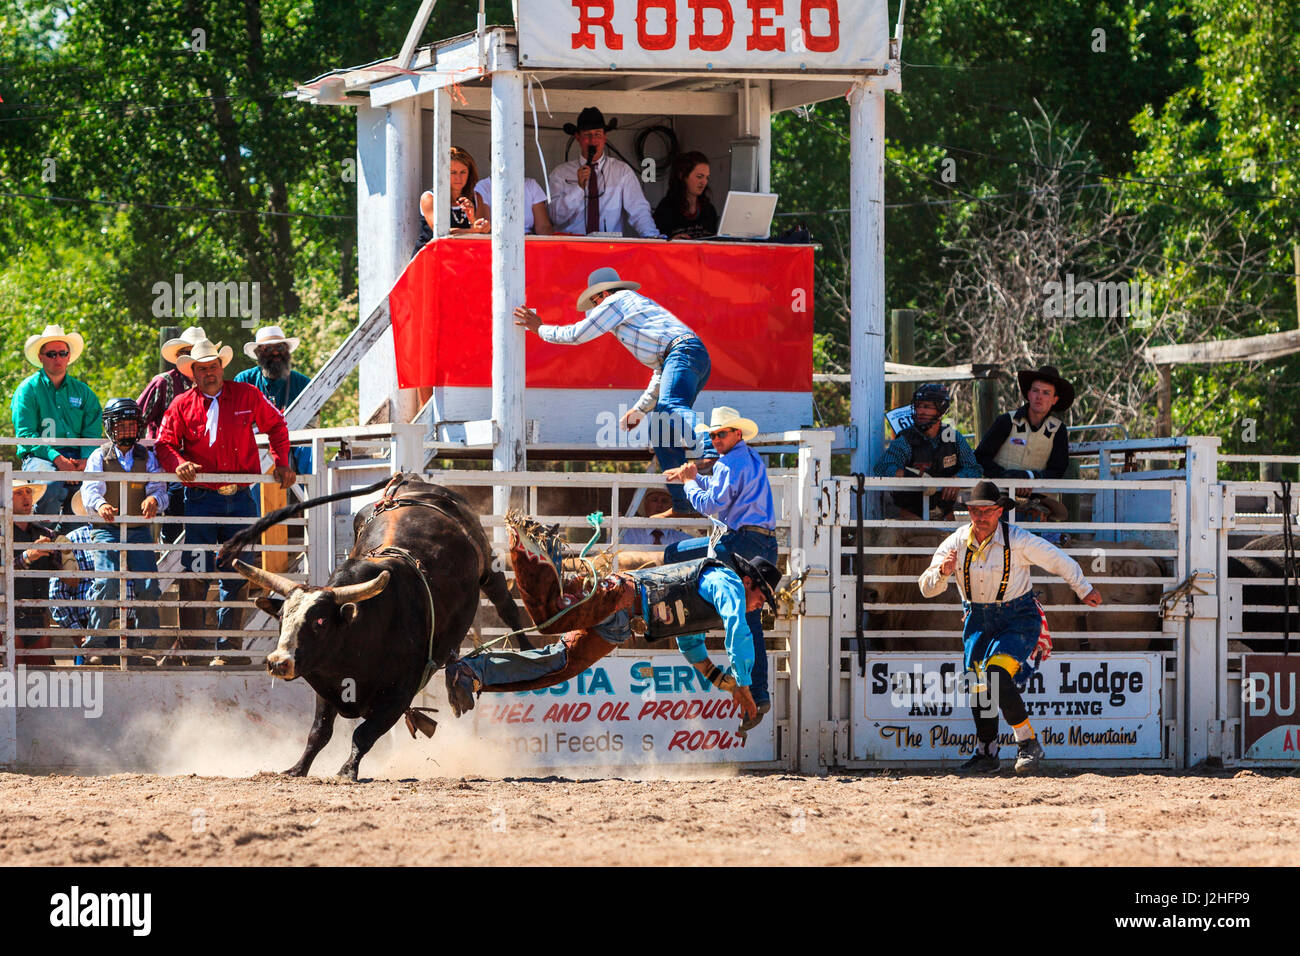 Rodeo Clown And Bull Rider Stock Photos Amp Rodeo Clown And